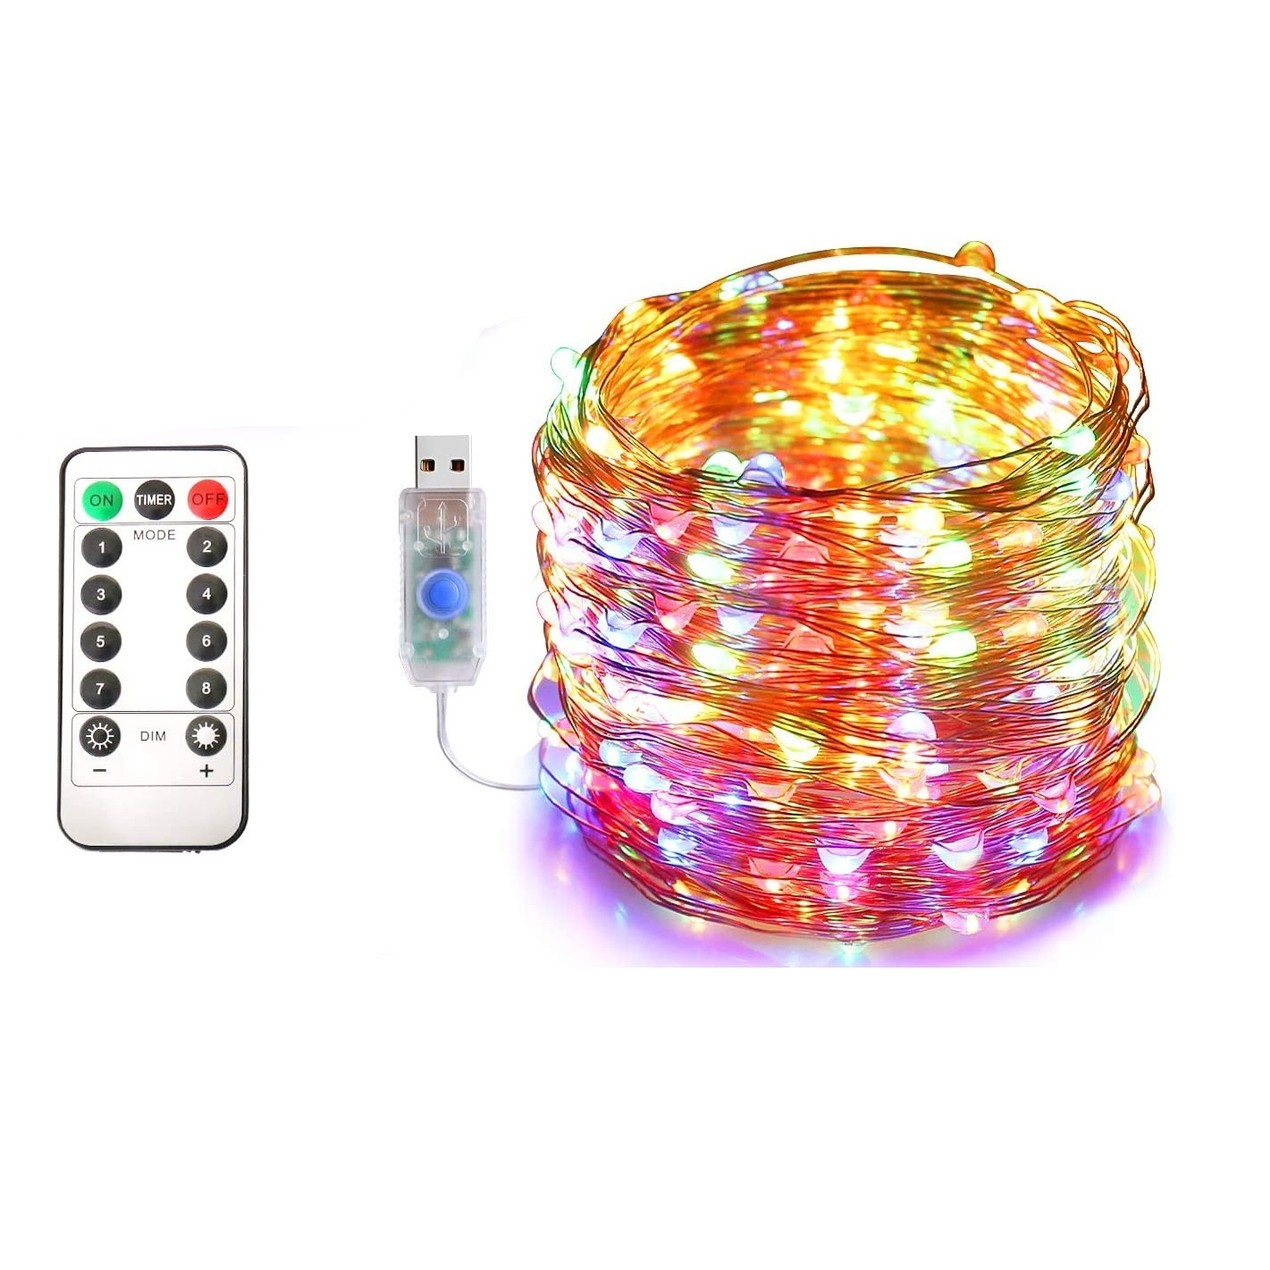 40ft USB Waterproof Remote Control LED Christmas String Lights